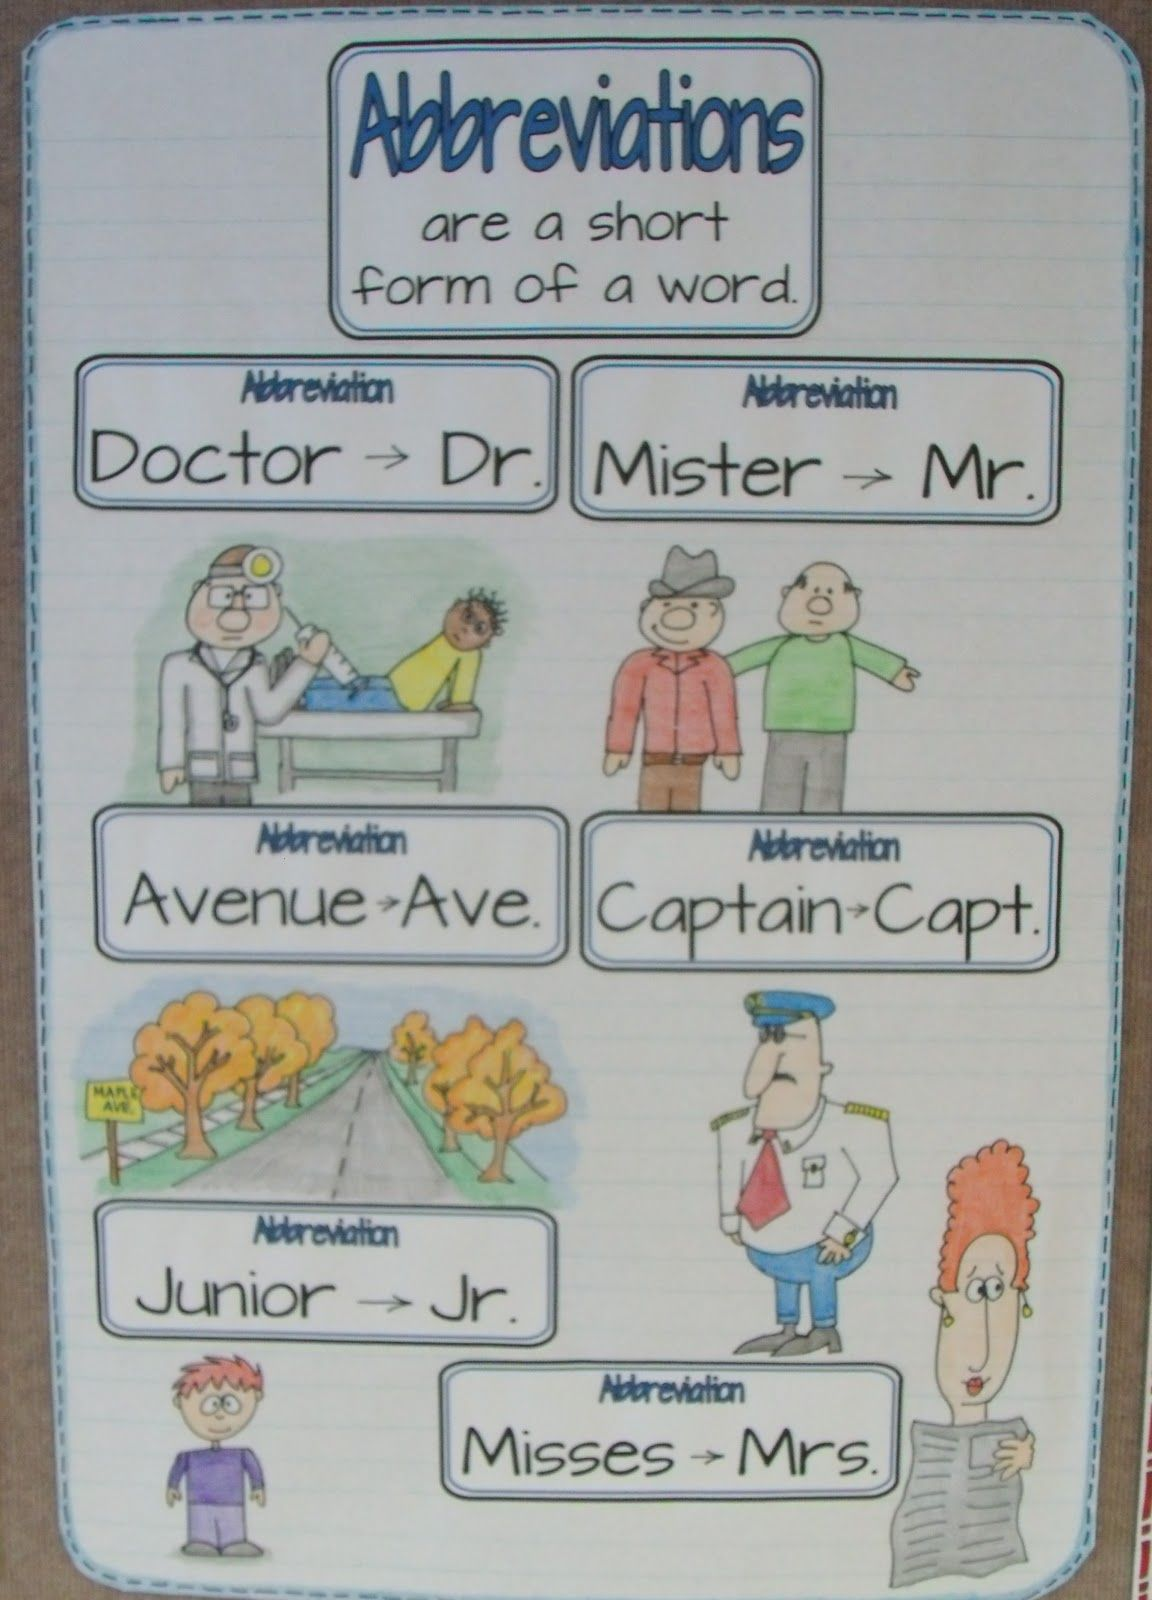 Abbreviations Anchor Chart 1 152 1 600 Pixels